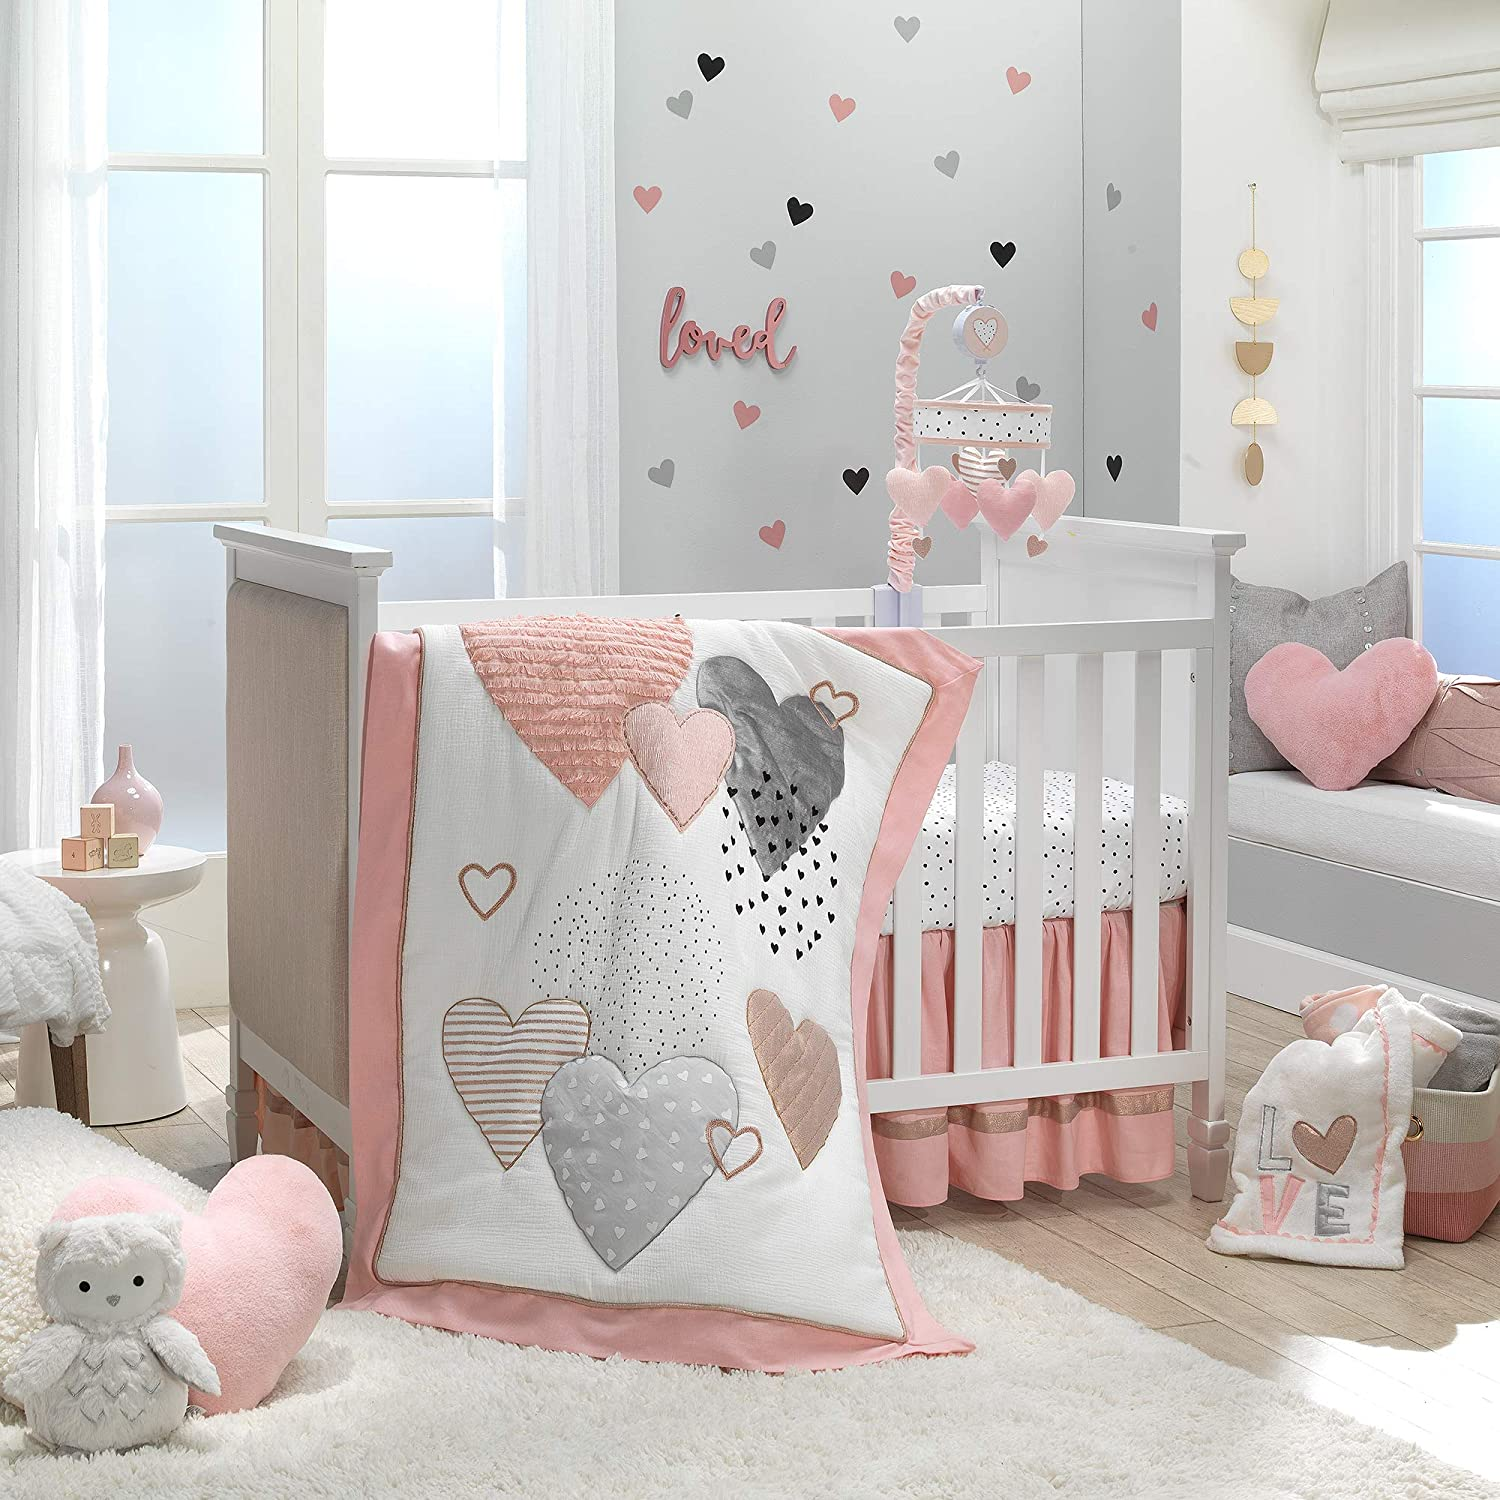 Lambs Ivy Signature Heart Super sale to Set Crib Free shipping anywhere in the nation 4-Piece Bedding -